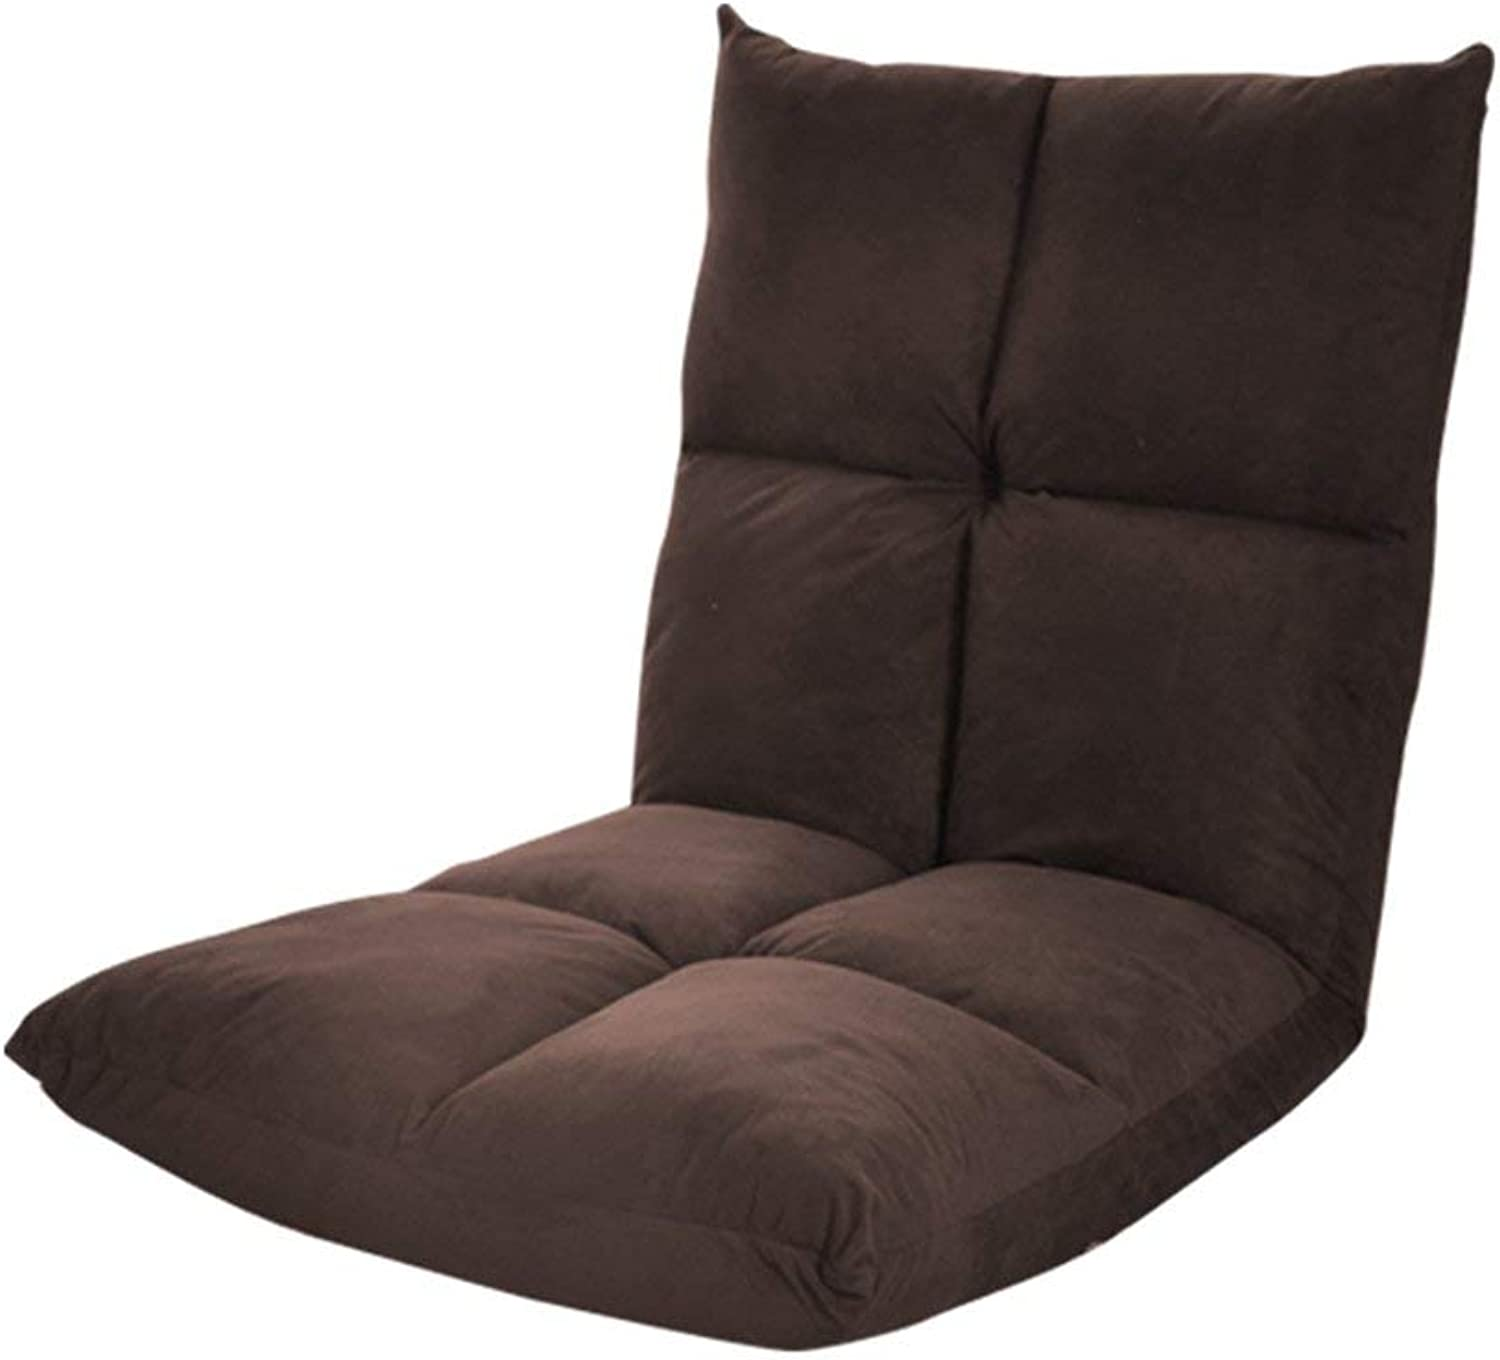 Sun Lounger Adjustable Floor Gaming 14-Position Cushioned Folding Lazy Recliner Beige Brown (color   Brown)